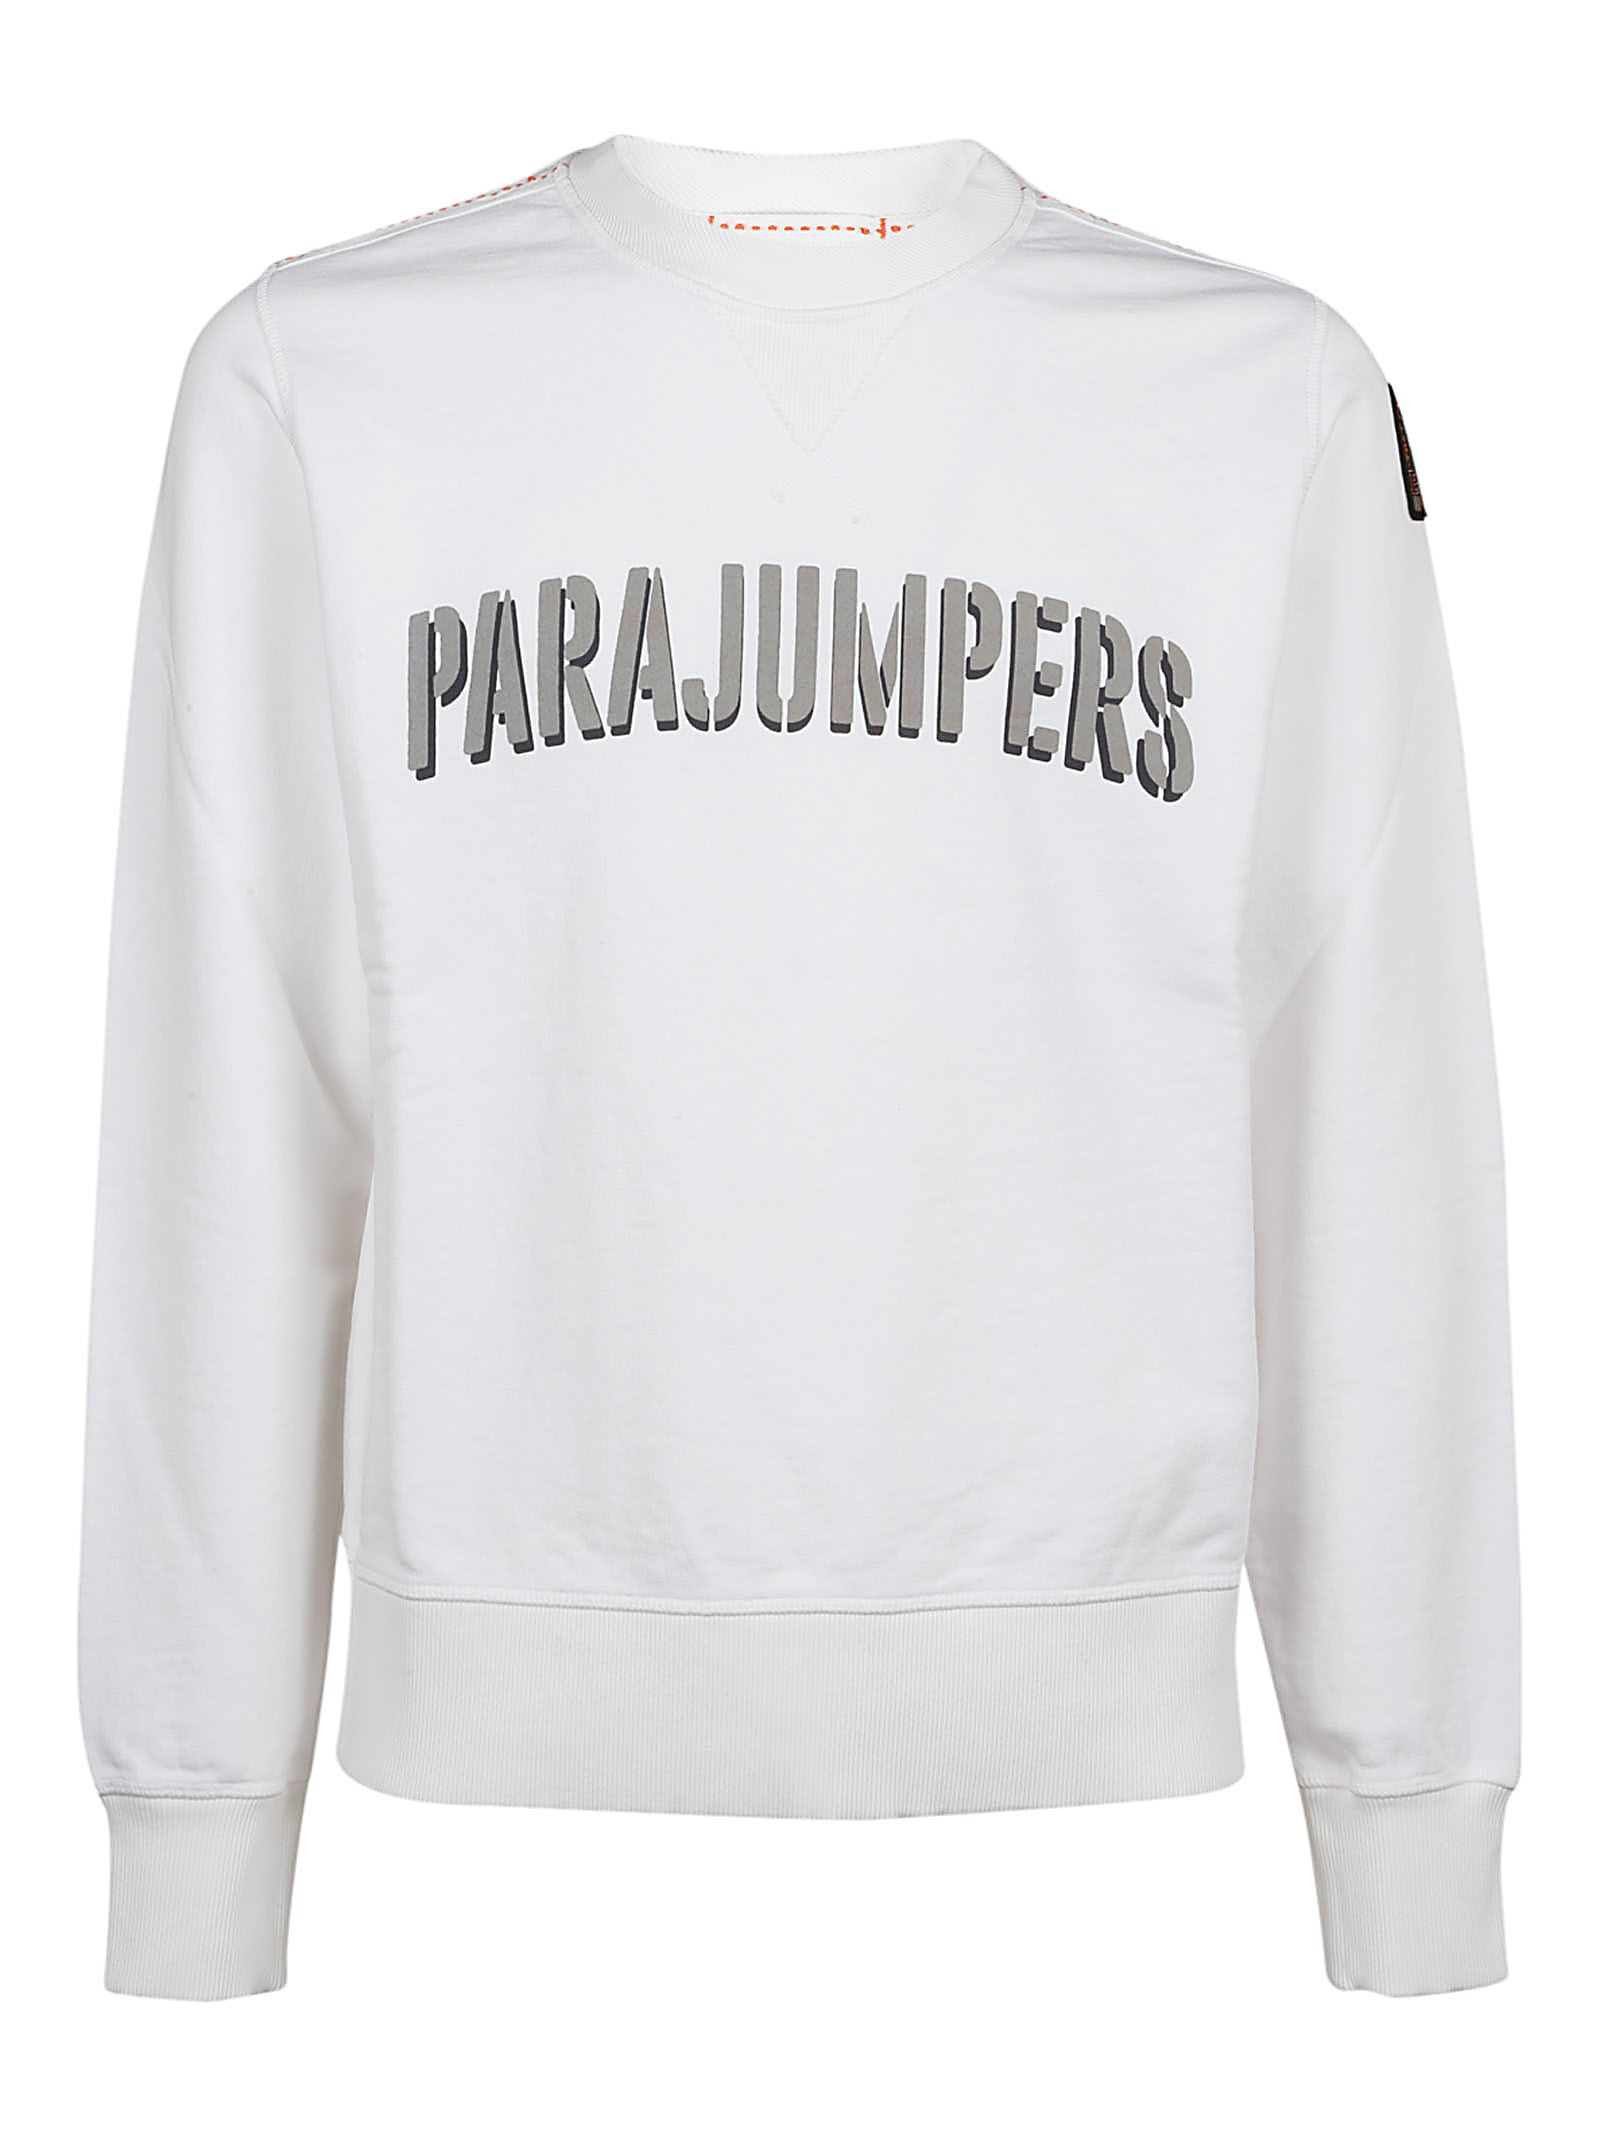 parajumpers sweater sale